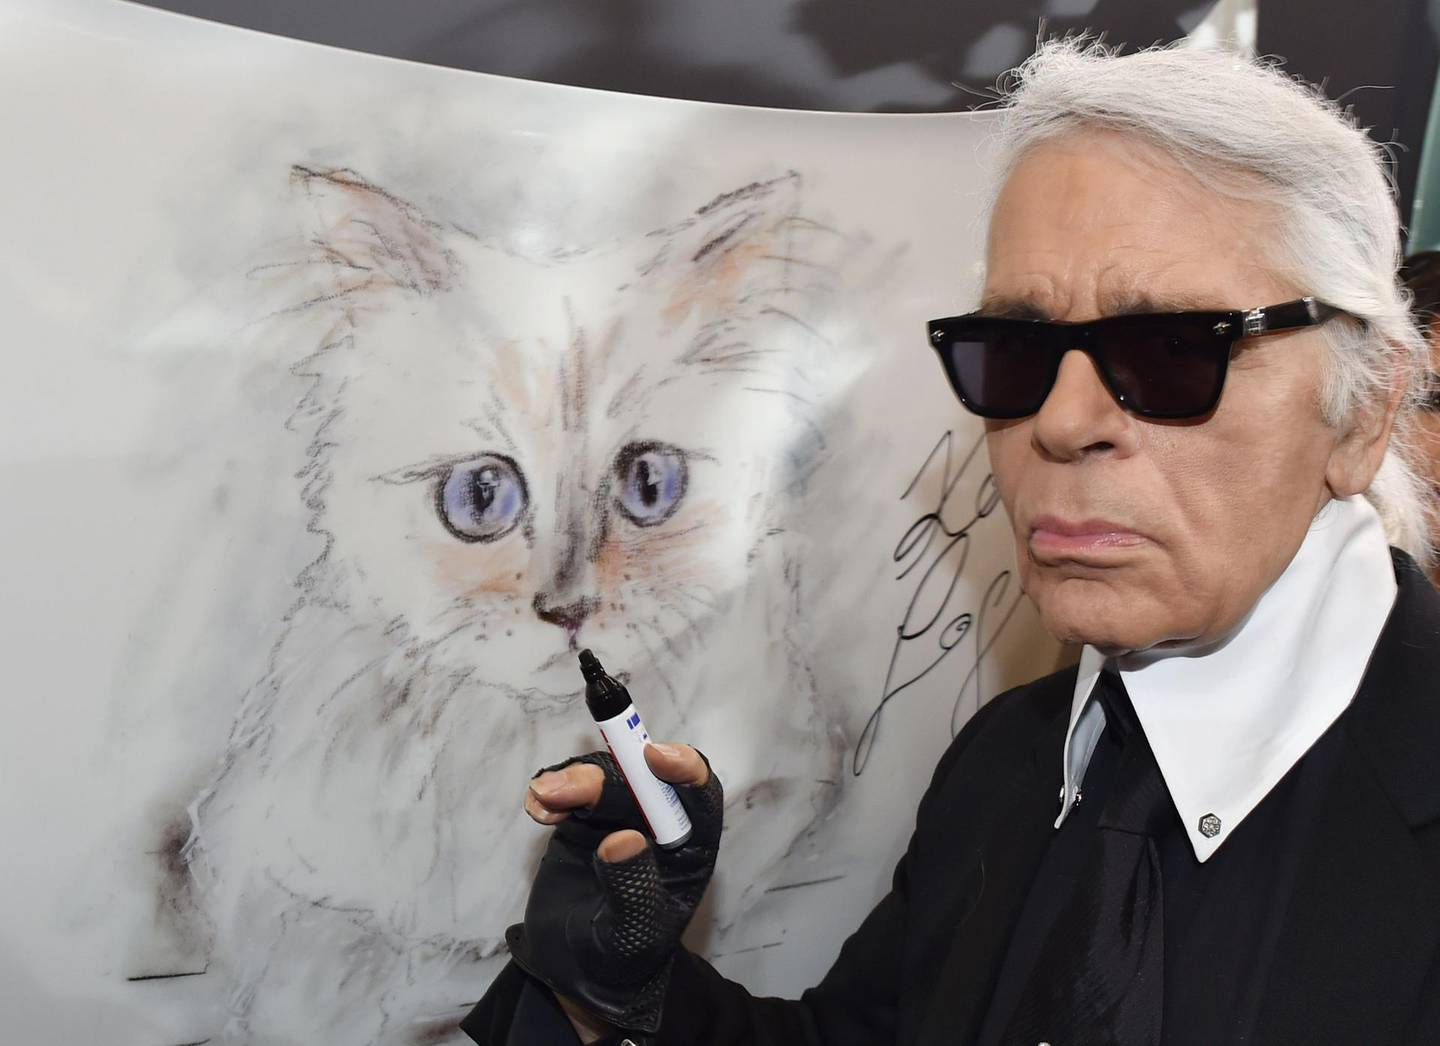 """(FILES) In this file photo taken on February 3, 2015 German fashion designer, artist, and photographer Karl Lagerfeld poses next to a painting of his cat """"Choupette"""" during the inauguration of the show """"Corsa Karl and Choupette"""" at the Palazzo Italia in Berlin.  German fashion designer Karl Lagerfeld has died at the age of 85, it was announced on February 19, 2019. / AFP / DPA / Jens KALAENE"""